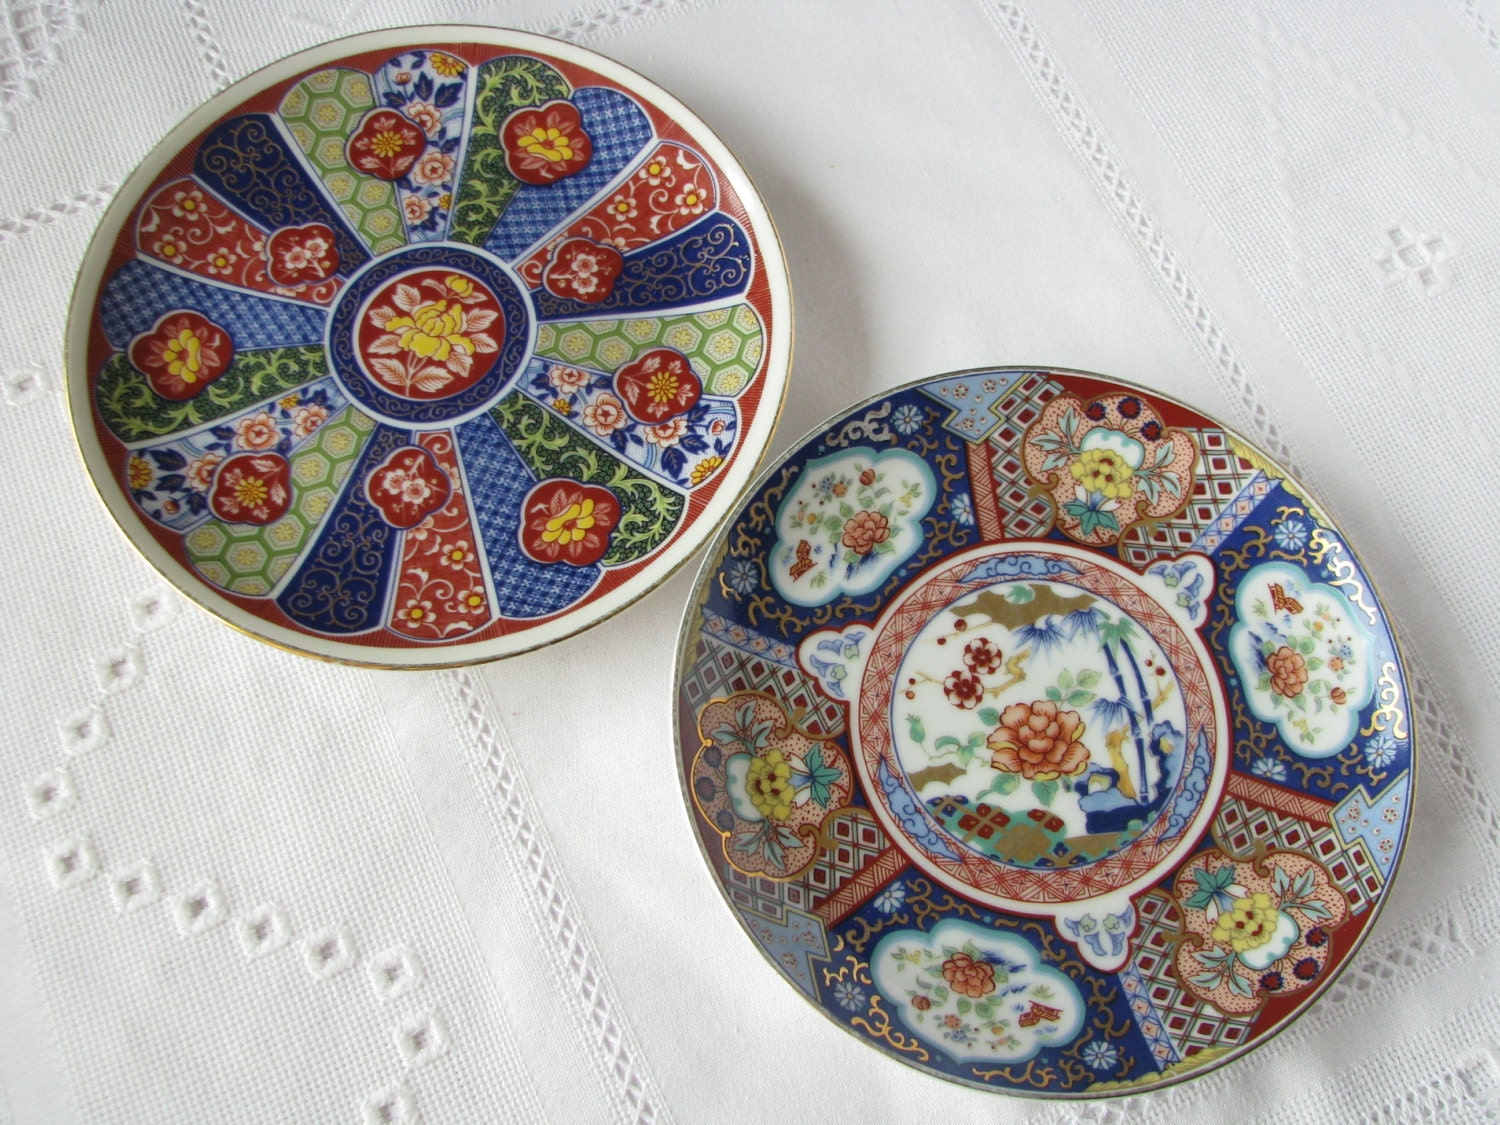 Colorful Plates For Wall Decor Decorative Plates Wall Decor Japanese Style Two Japanese Plate & Colorful Plates For Wall Decor | Wall Plate Design Ideas